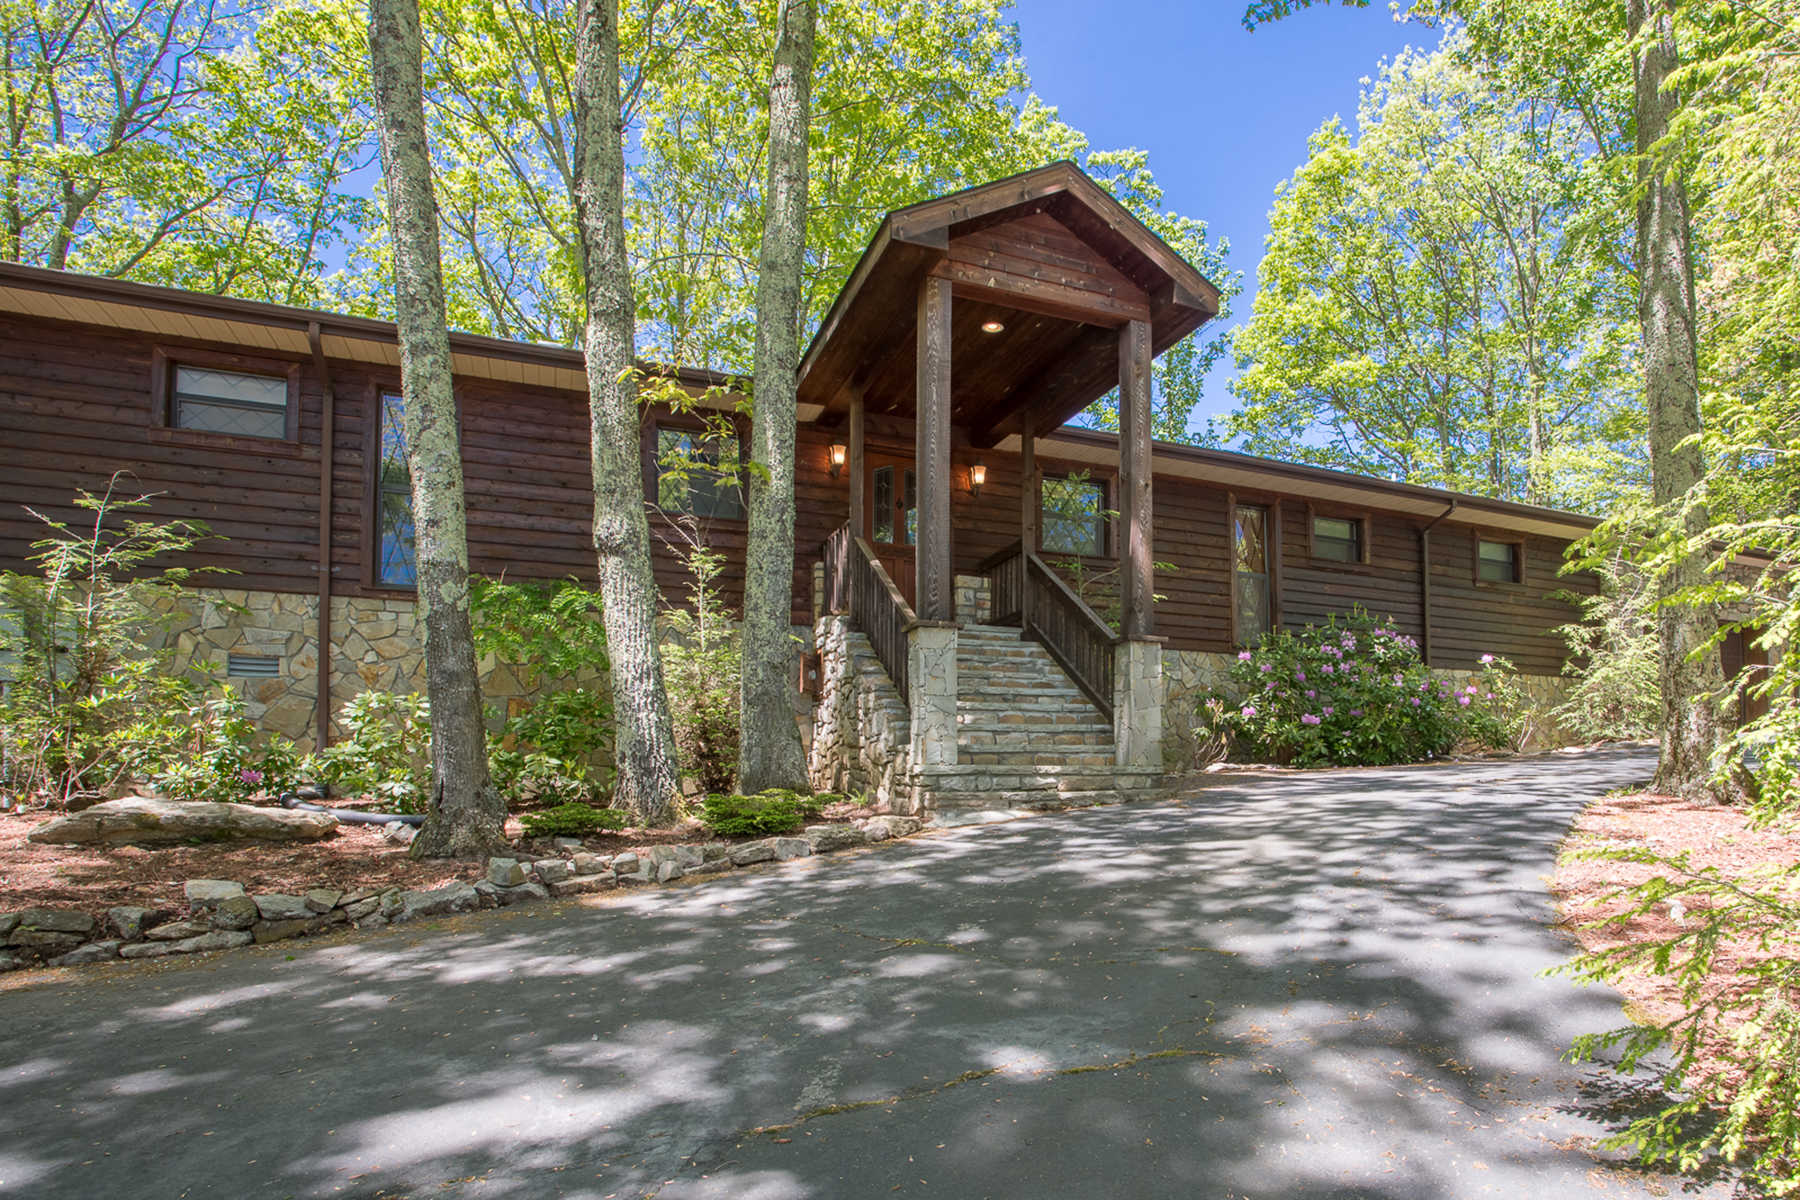 Single Family Home for Sale at 427 St. Andrews Road, Beech Mountain, NC 28604 427 St. Andrews Road Beech Mountain, North Carolina 28604 United States